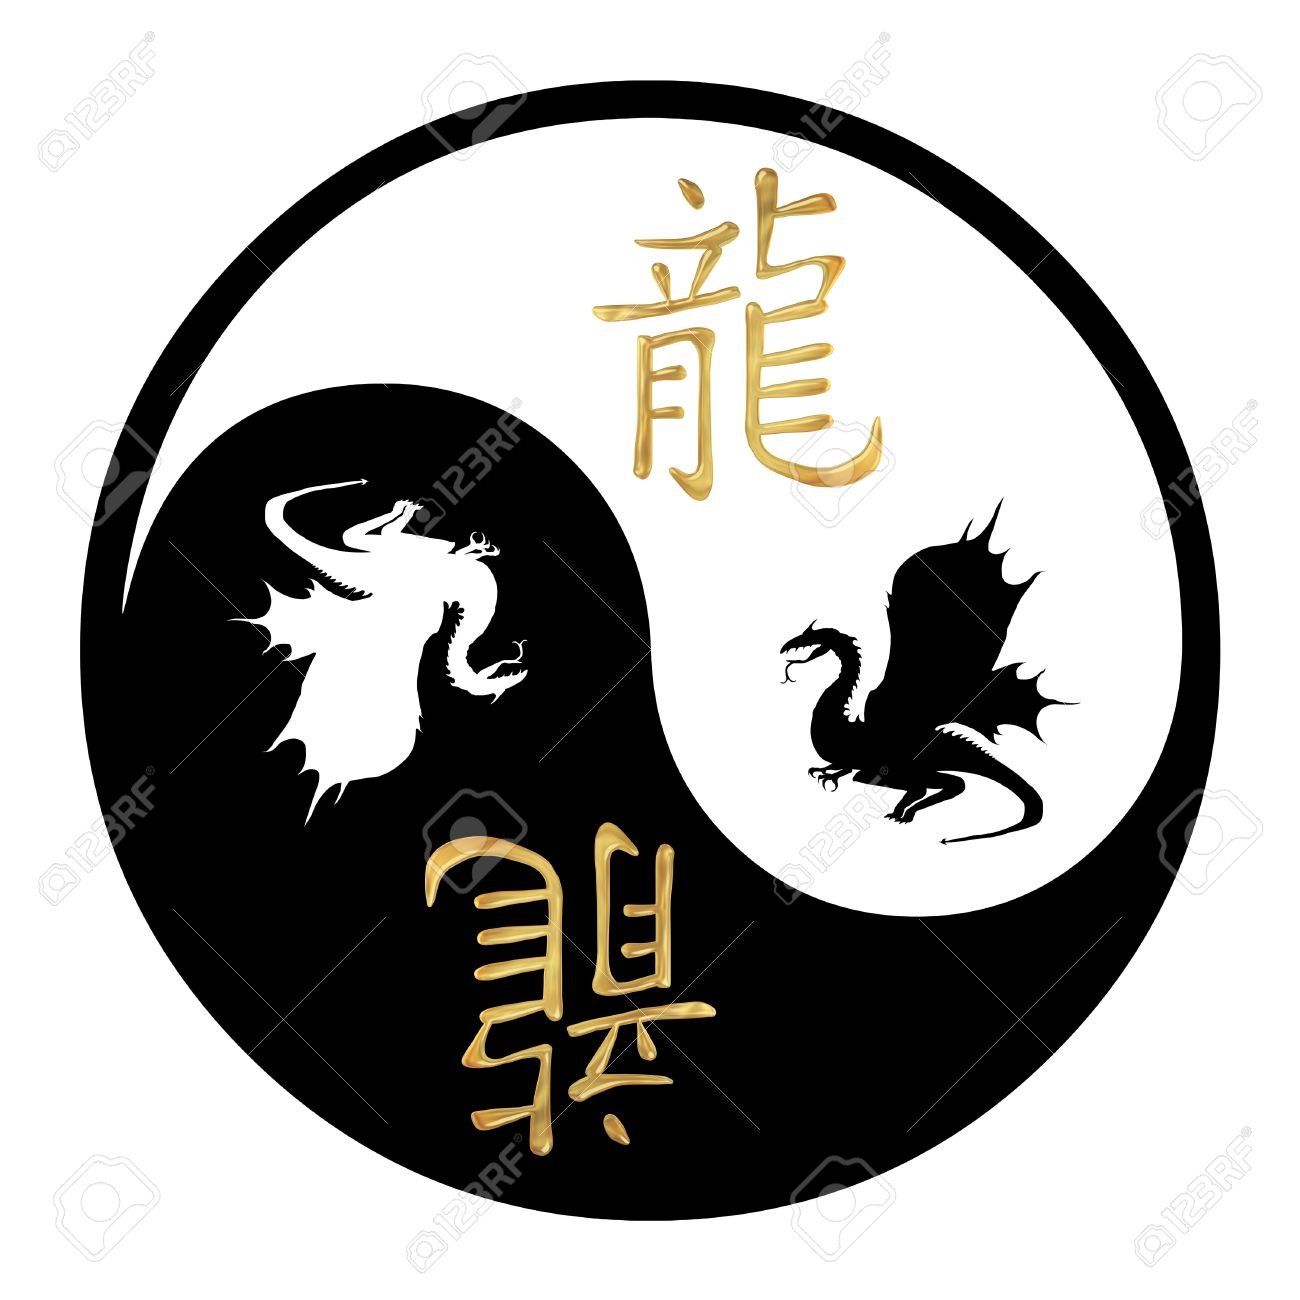 Yin yang symbol with chinese text and image of a dragon stock yin yang symbol with chinese text and image of a dragon stock photo 9551591 buycottarizona